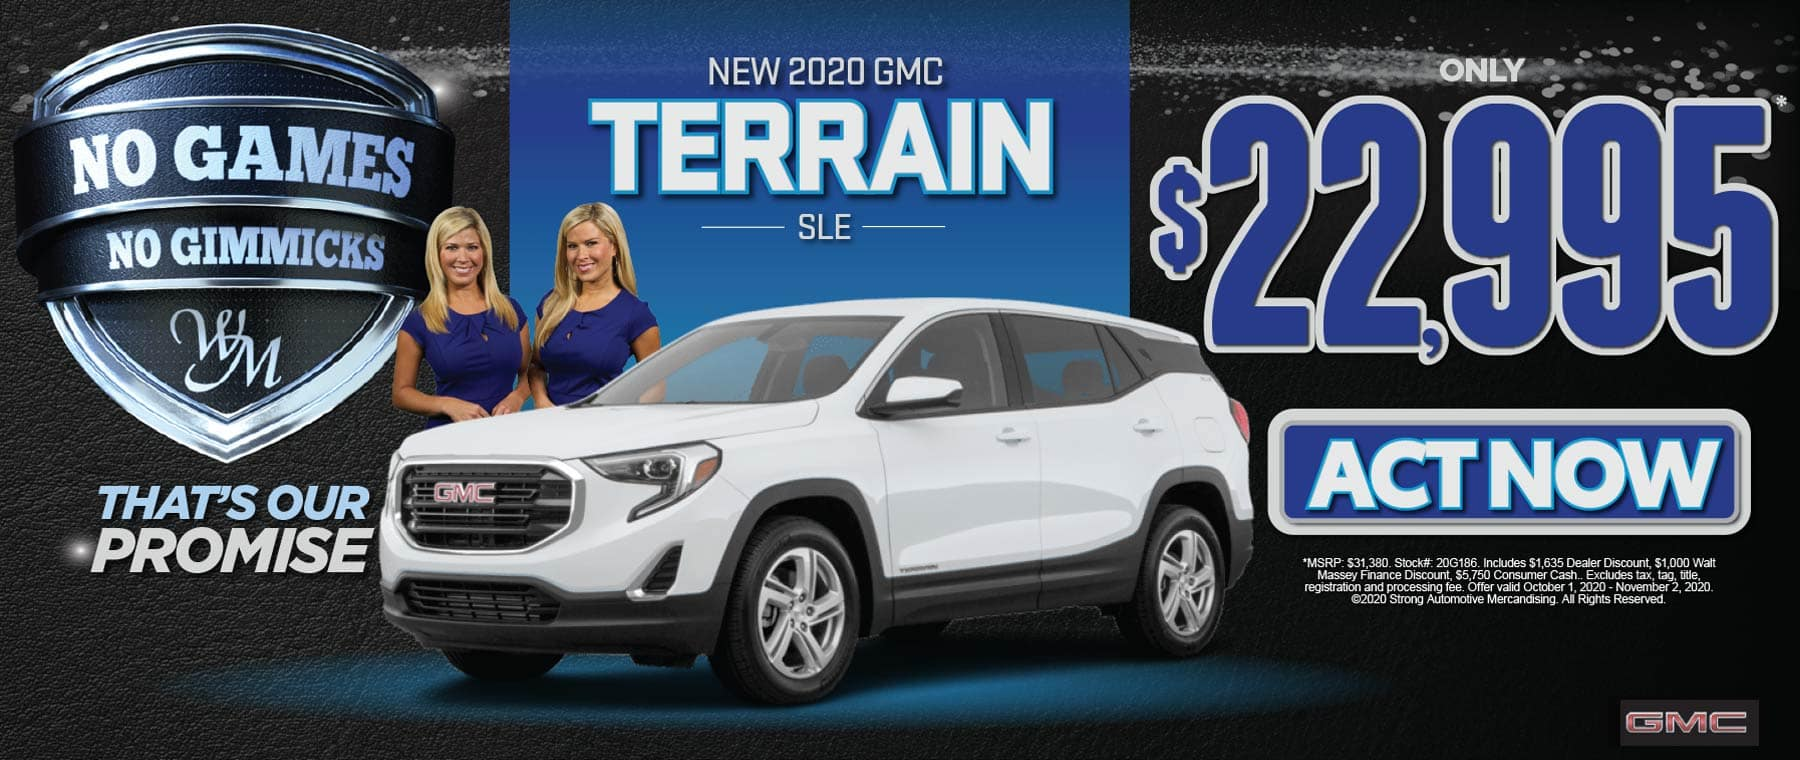 NEW GMC TERRAIN FOR $22,995 ACT NOW